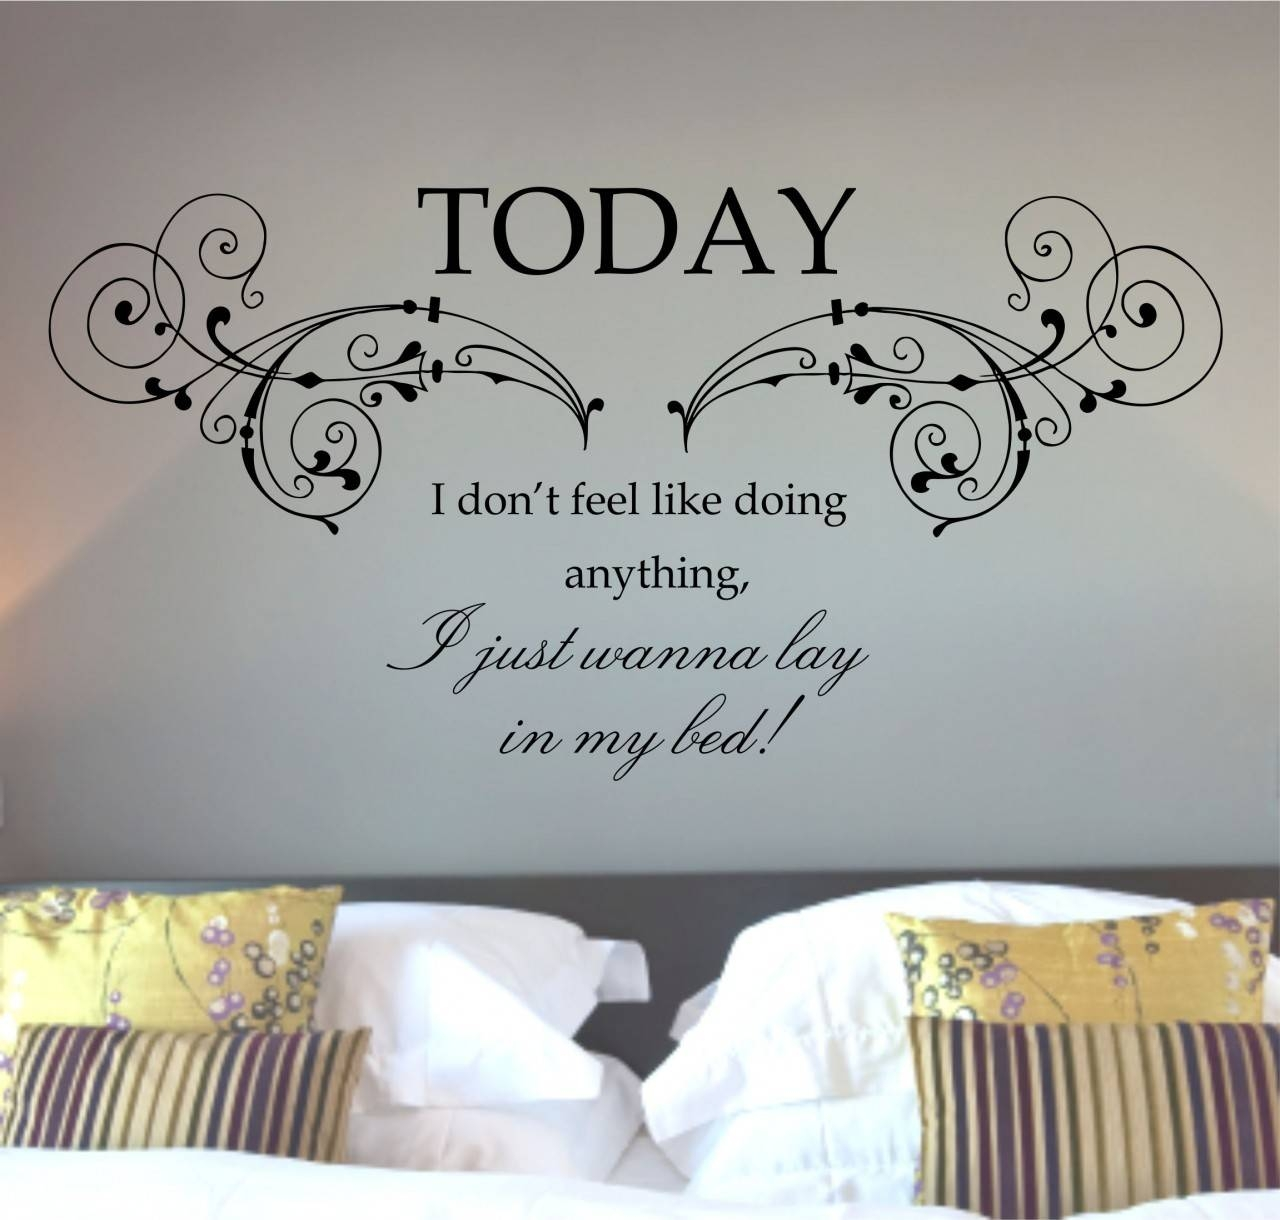 Bedroom : Exquisite Wall Art Decor Australia Amazing Wall Art Pertaining To Most Current Bedroom Wall Art (View 9 of 25)